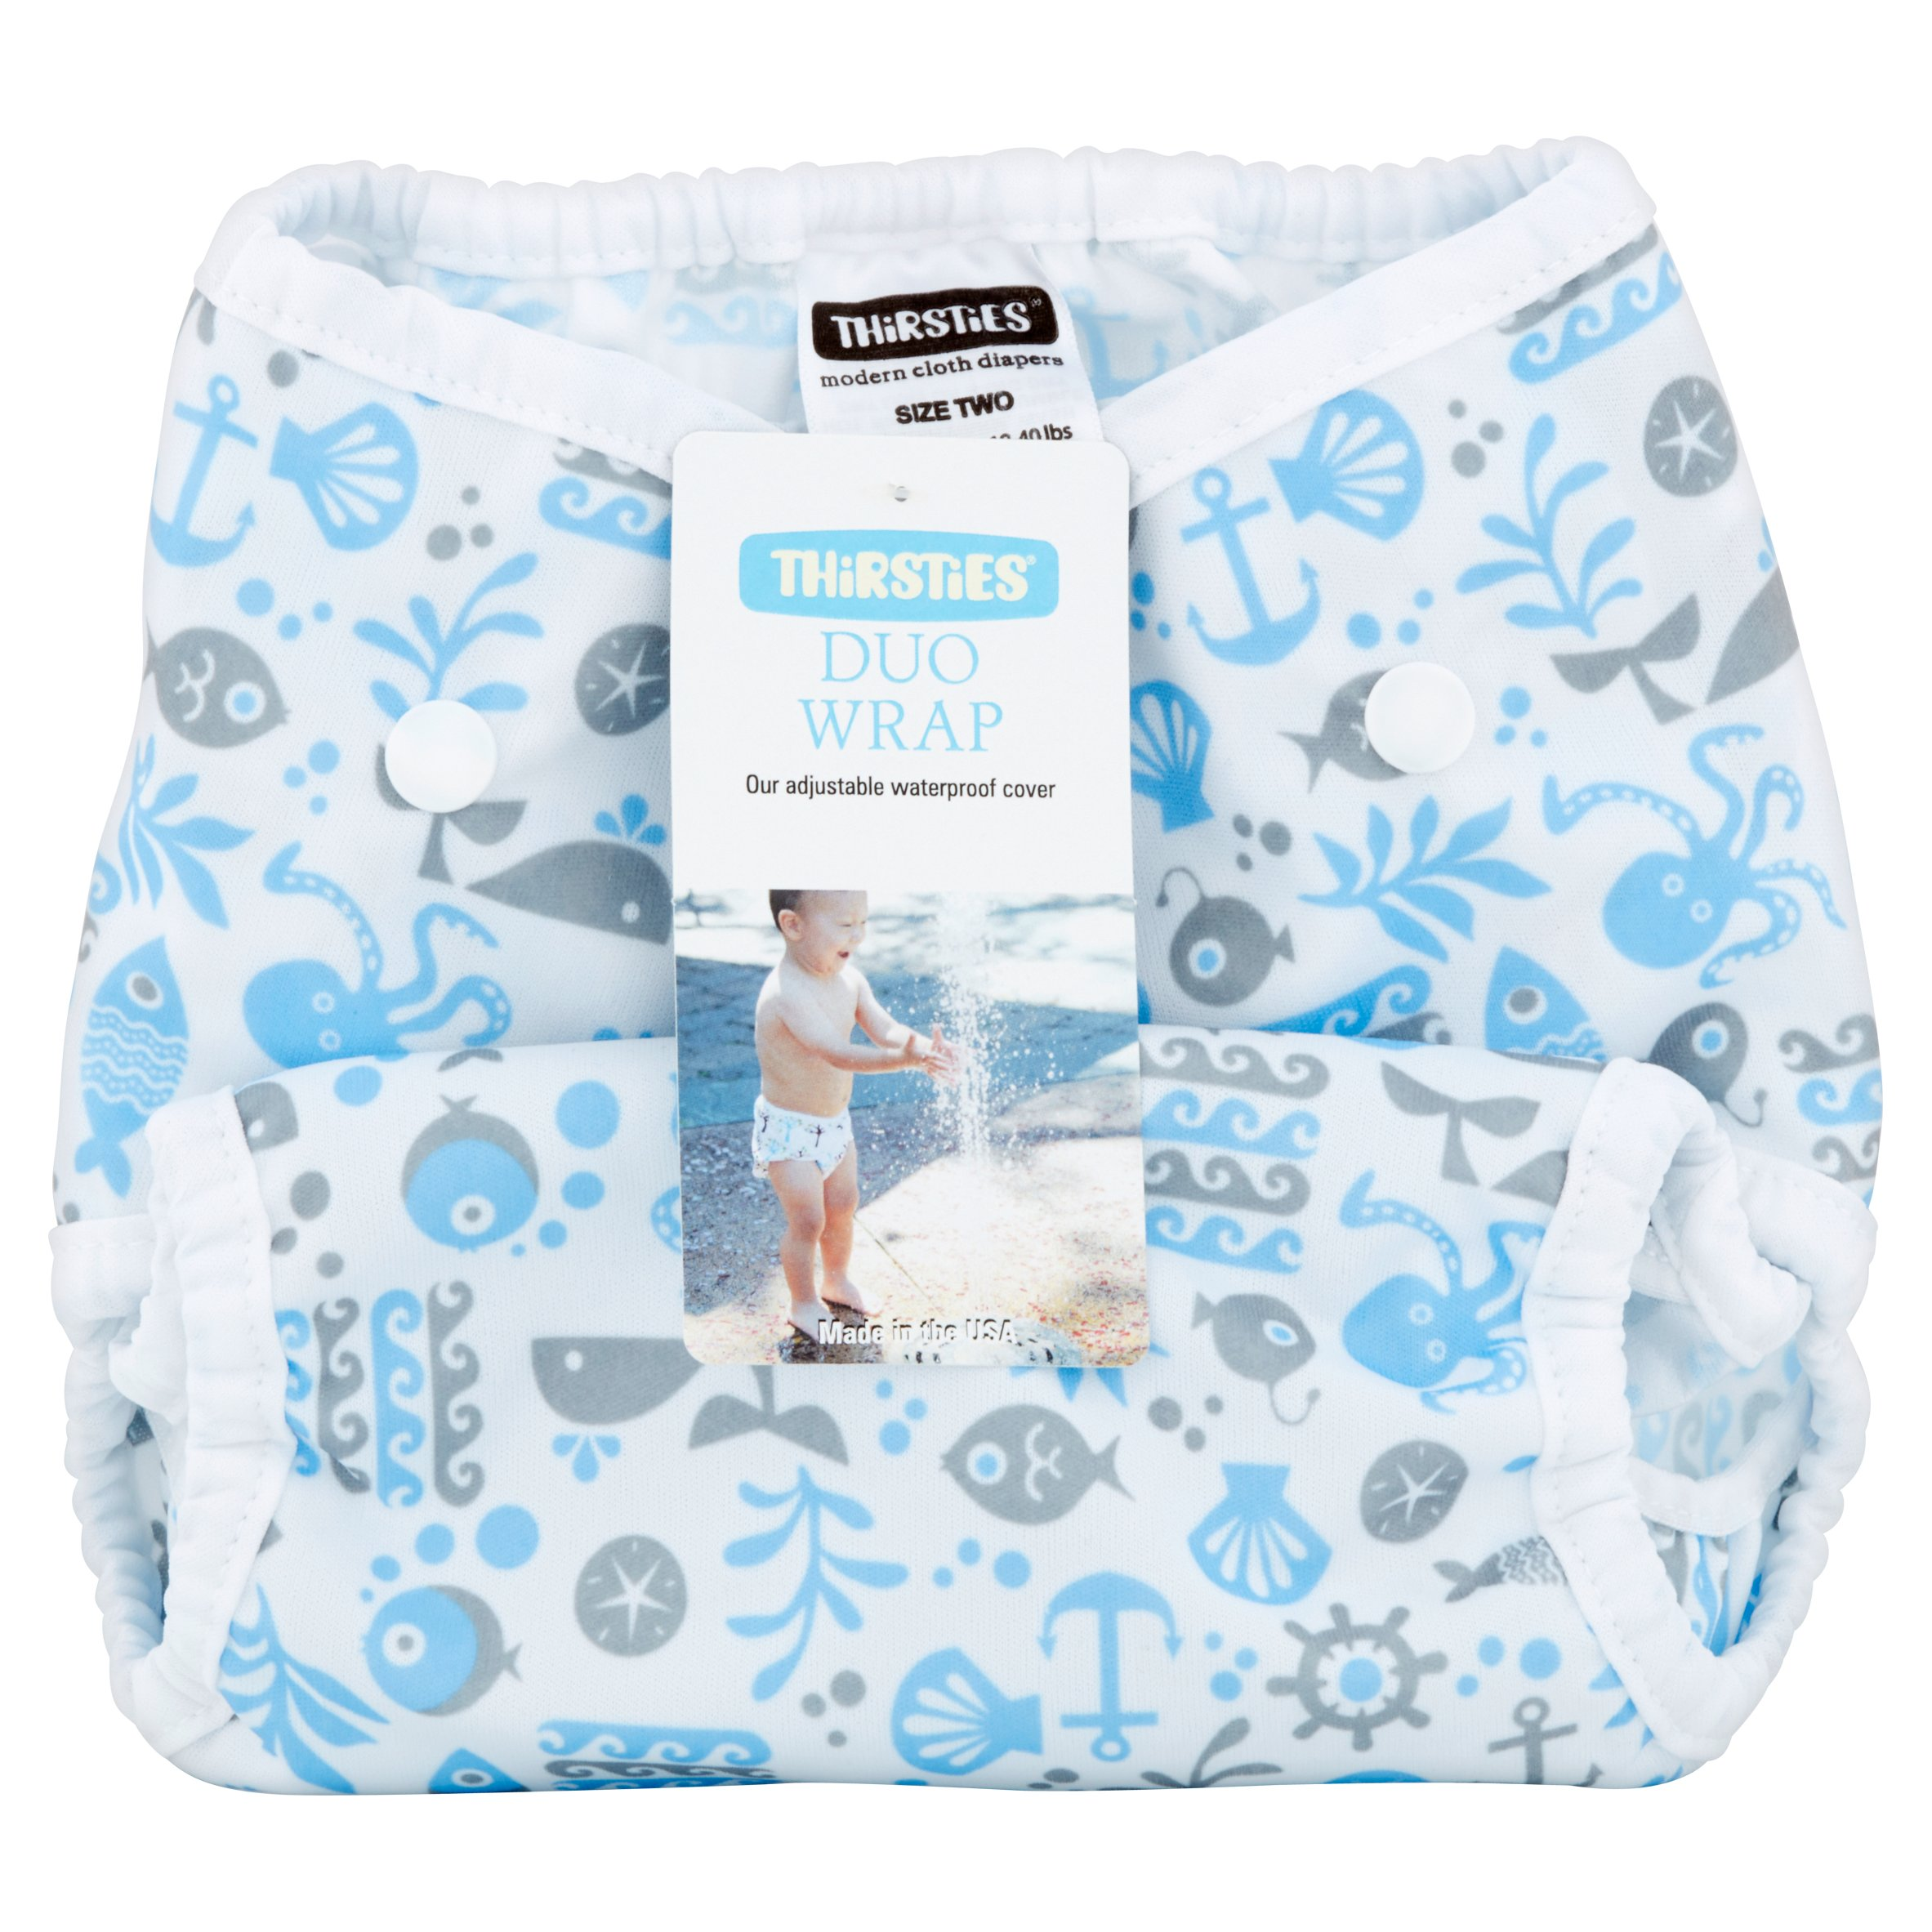 Thirsties Duo Wrap Size Two Ocean Life Modern Cloth Diapers, 9-36 months